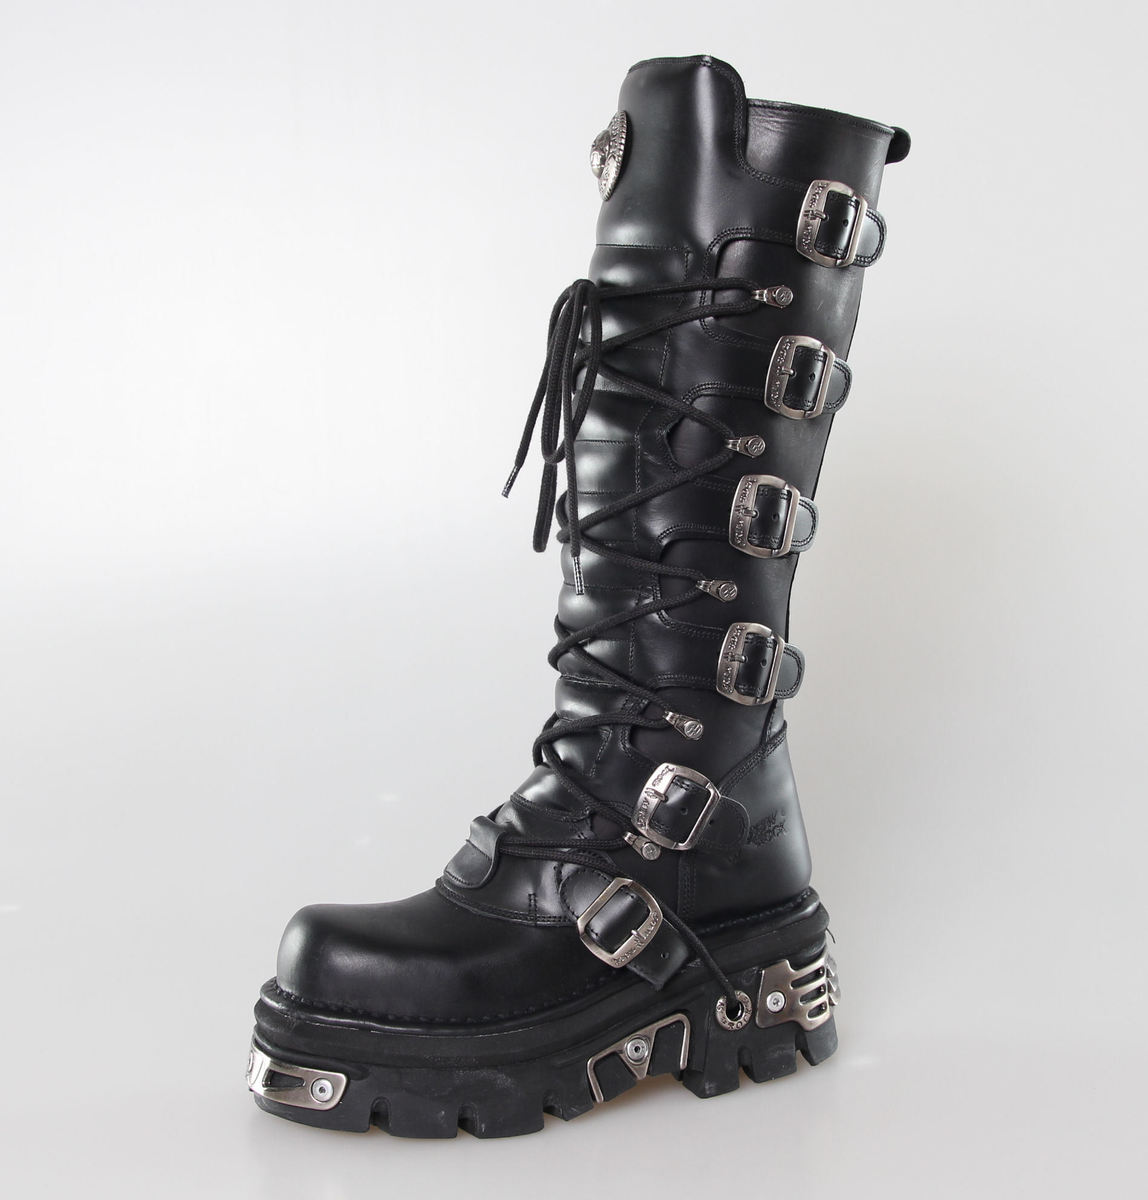 Boty New rock - 6-Buckle Boots (272-S1) Black - N-8-08-700-00